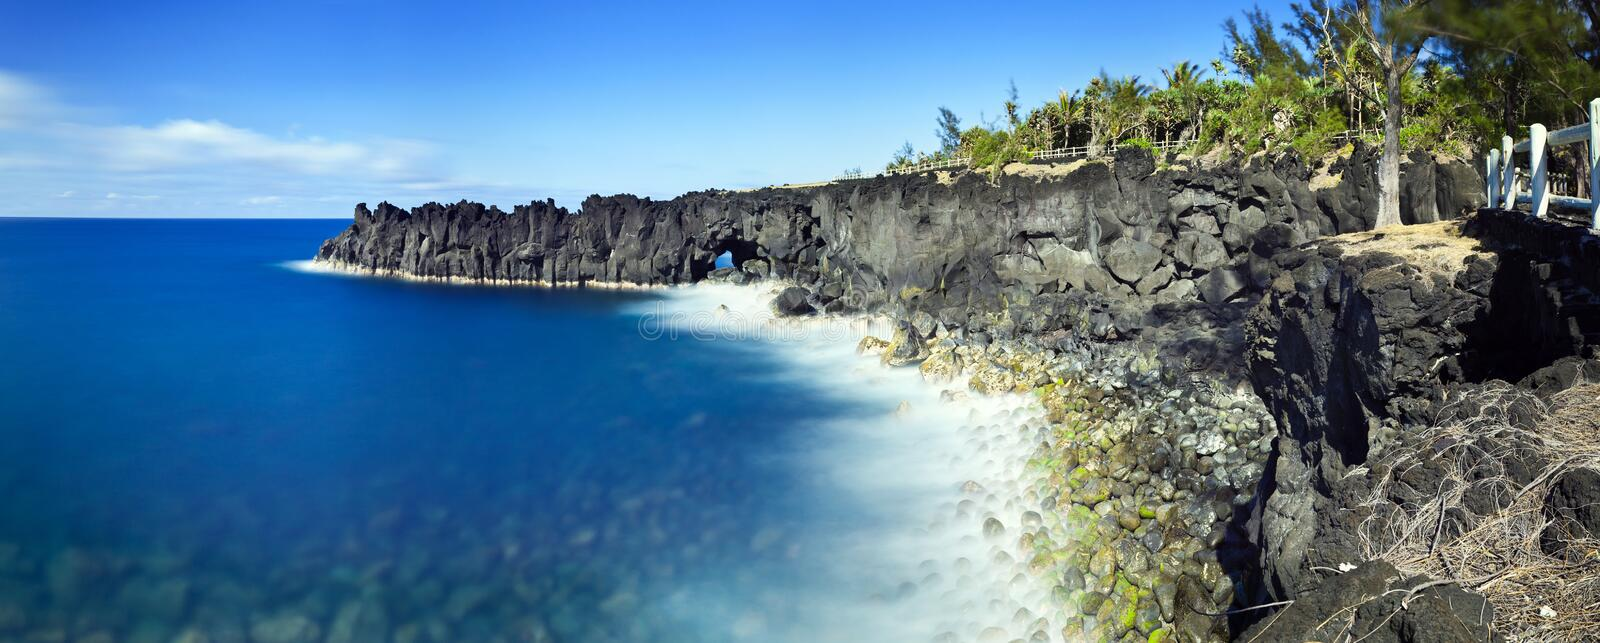 Cliffs on Reunion island royalty free stock photo